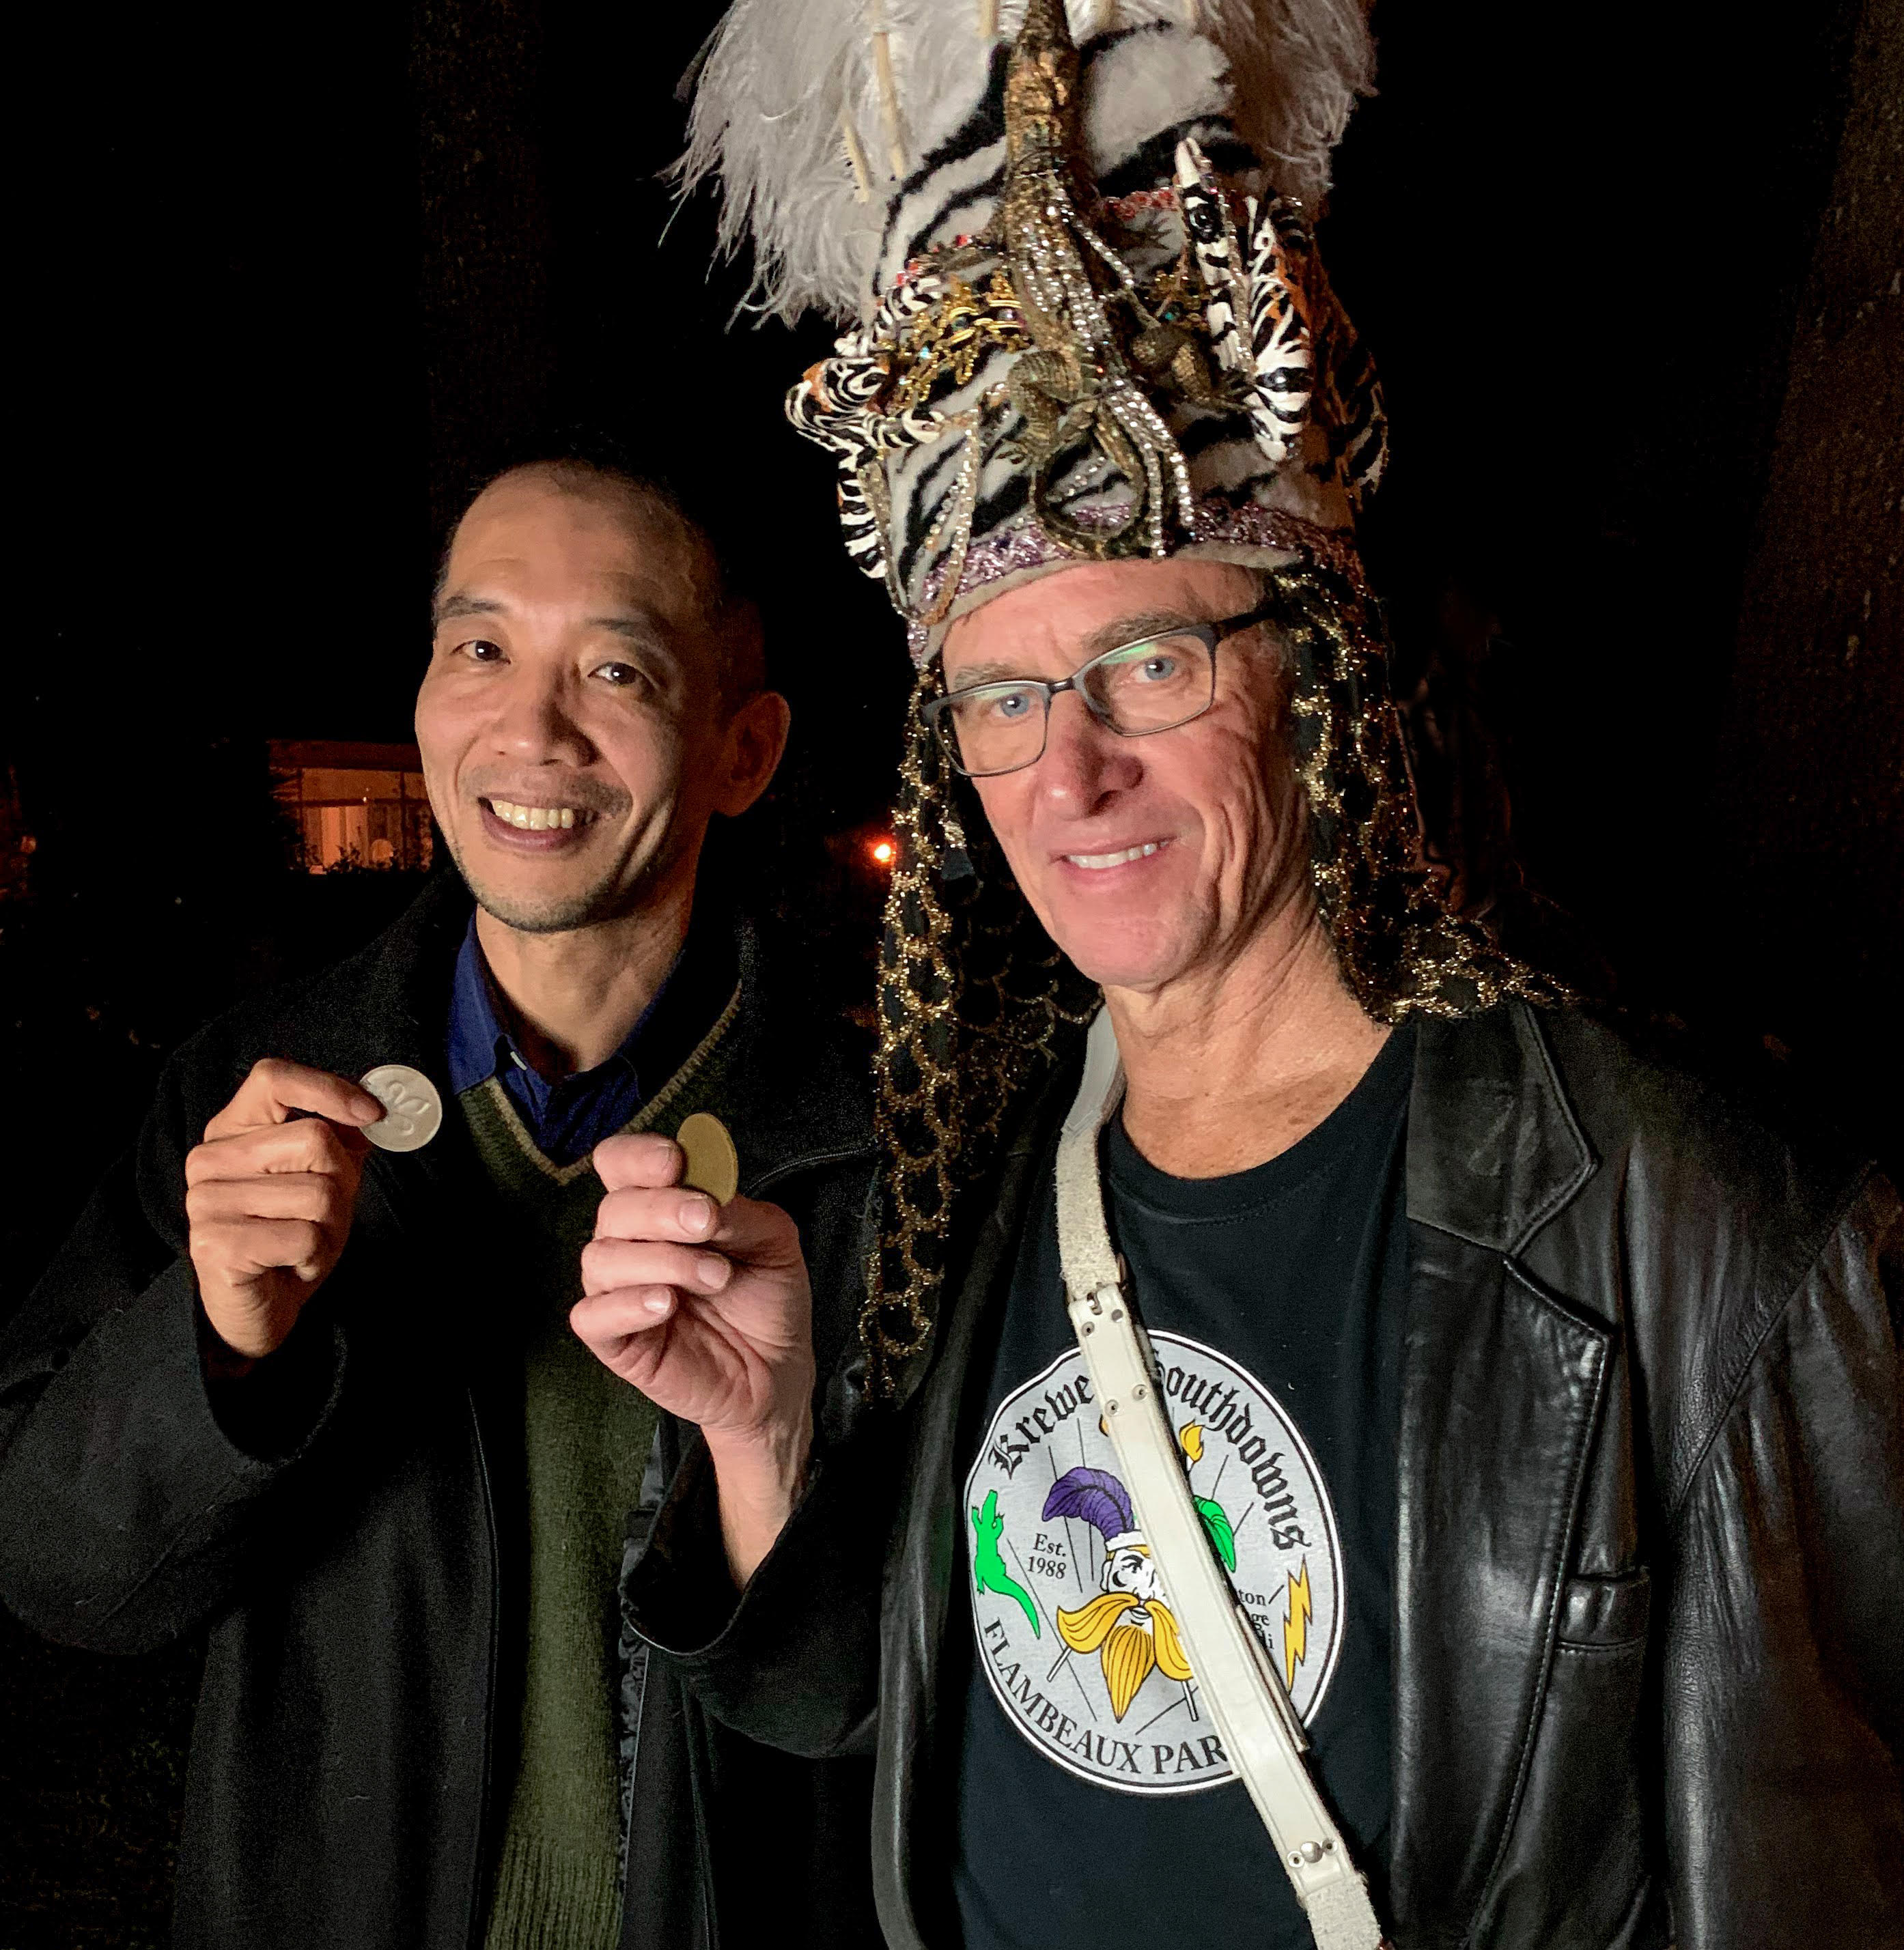 Two men face the camera: at left, Naohiro Kato, and at right, a Mardi Gras krewe leader wearing a headdress. Both hold small bioplastic doubloons.